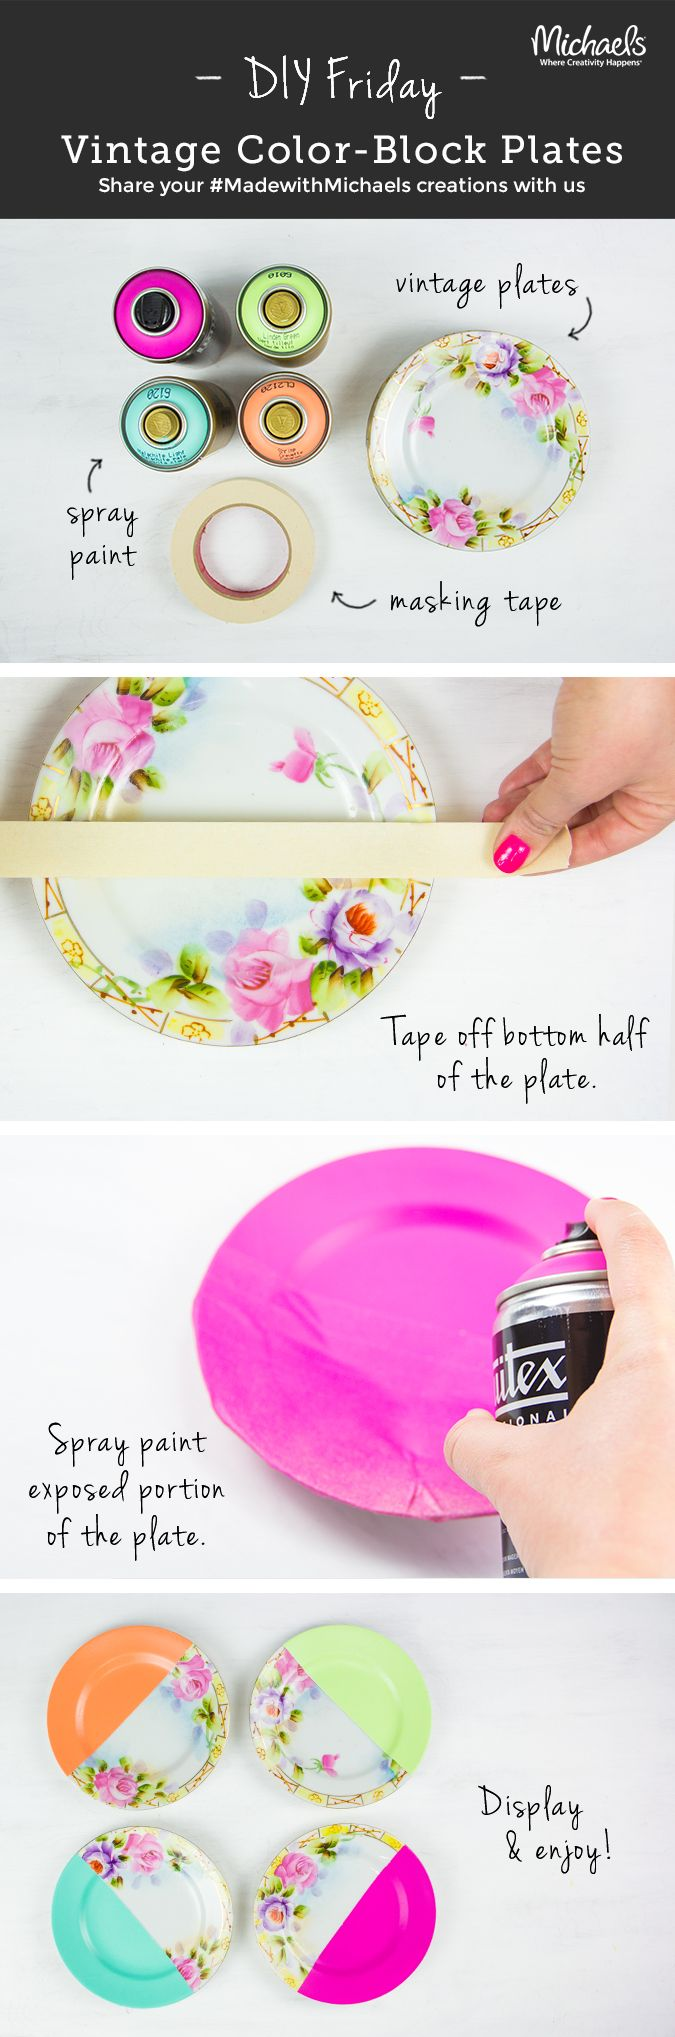 #DIYFriday Flea Market! Upcycle old plates with easy color blocking. Our tip: use rubbing alcohol to remove dirt and grease before dipping in paint.